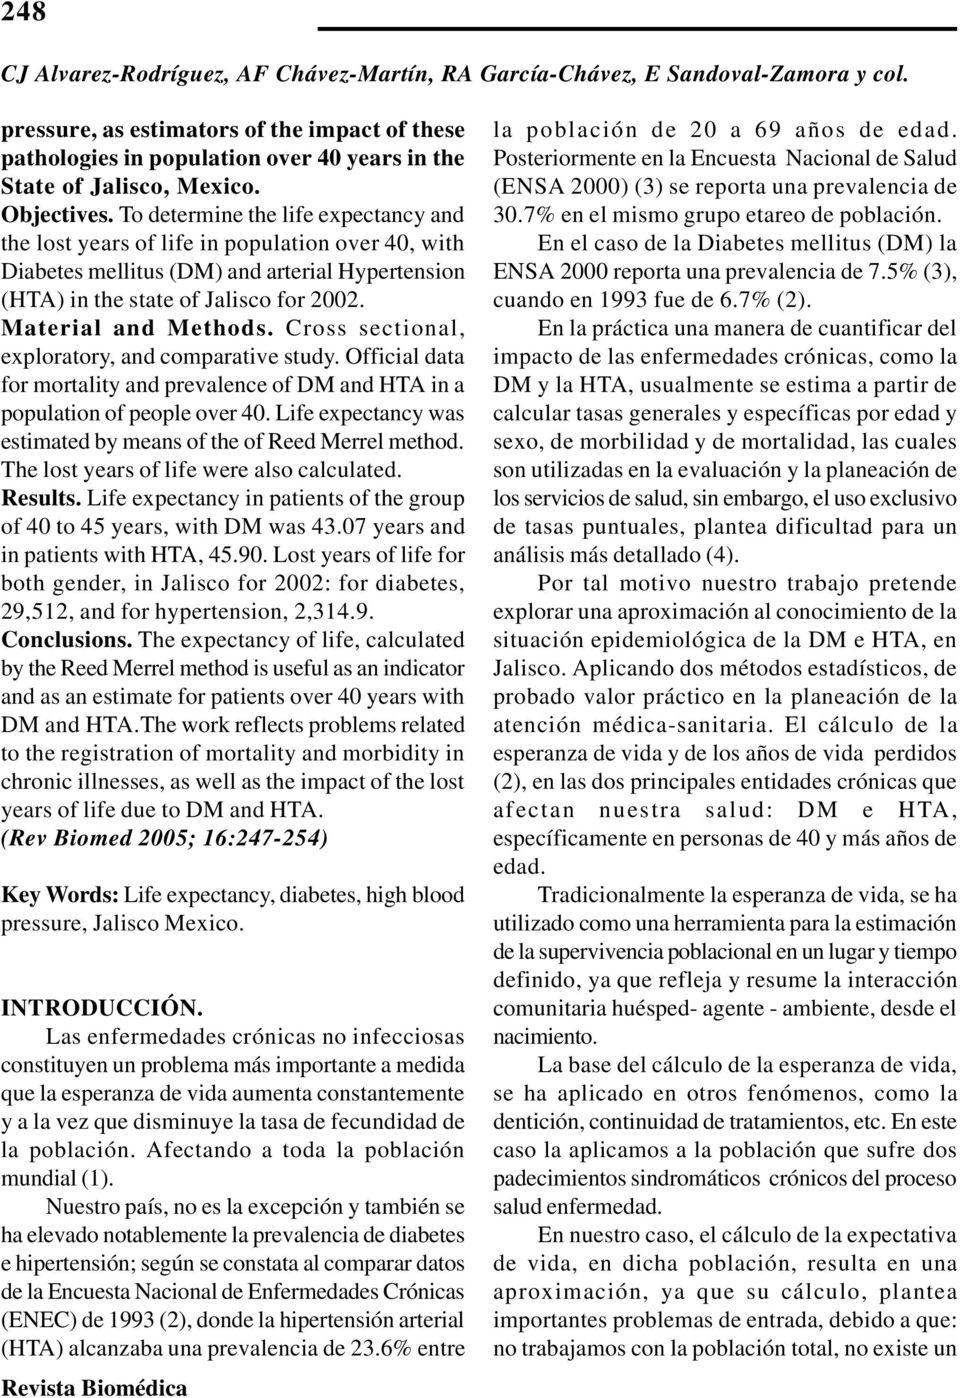 To determine the life expectancy and the lost years of life in population over 40, with Diabetes mellitus (DM) and arterial Hypertension (HTA) in the state of Jalisco for 2002. Material and Methods.